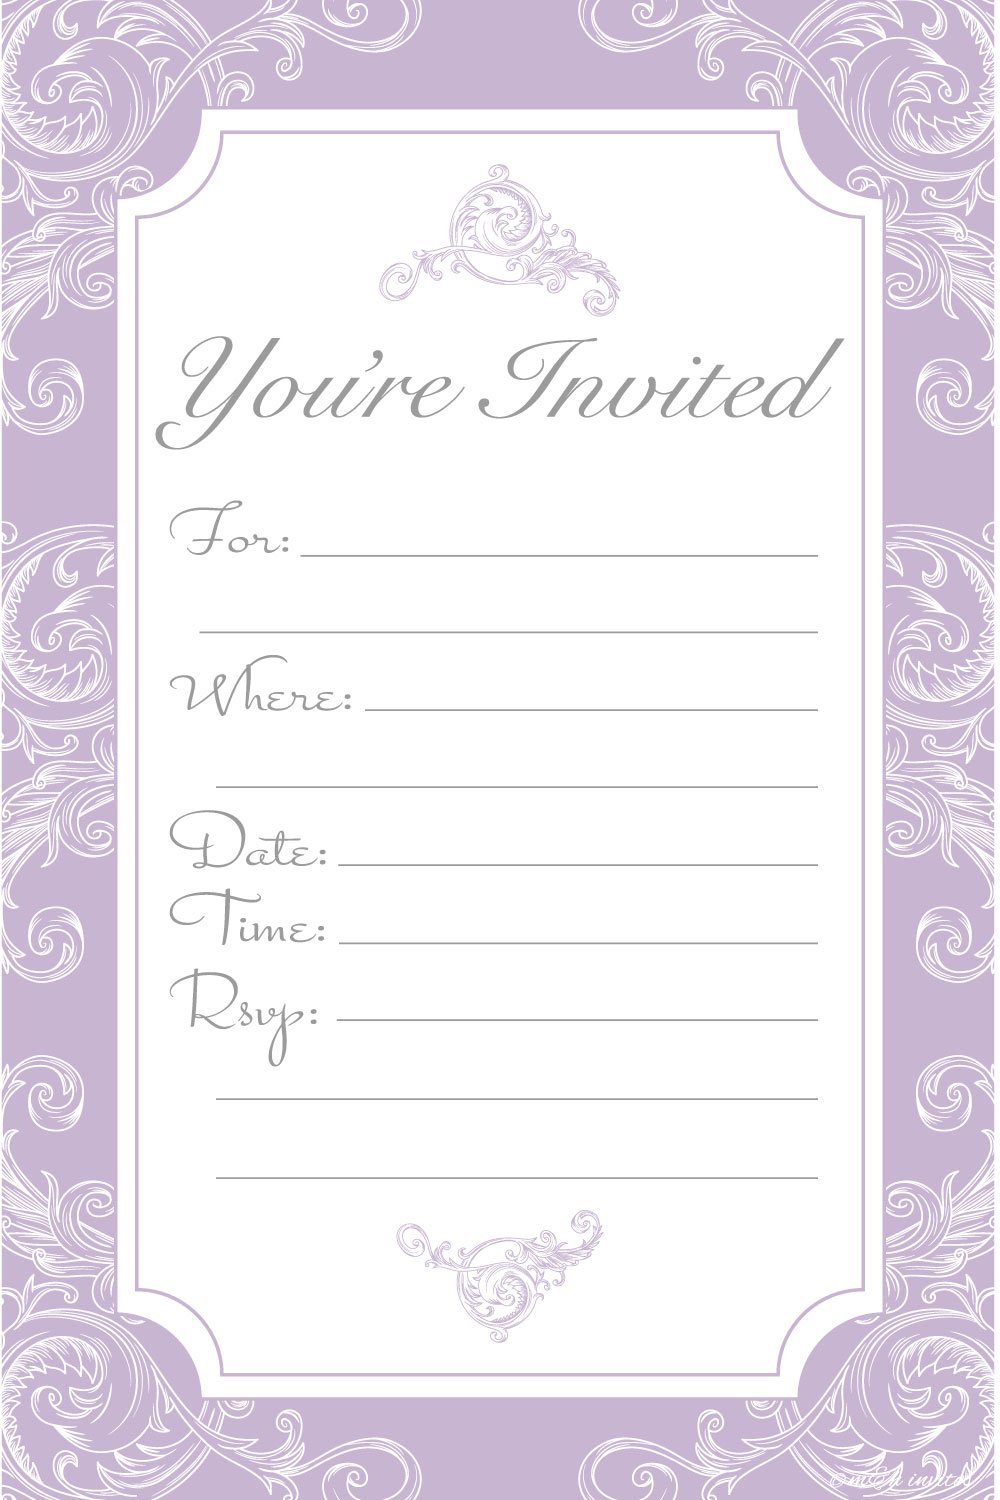 Elegant Lavender Purple Fill In Invitations - Wedding, Bridal Shower, Baby Shower, Engagement Party, Birthday - (20 Count) With Envelopes